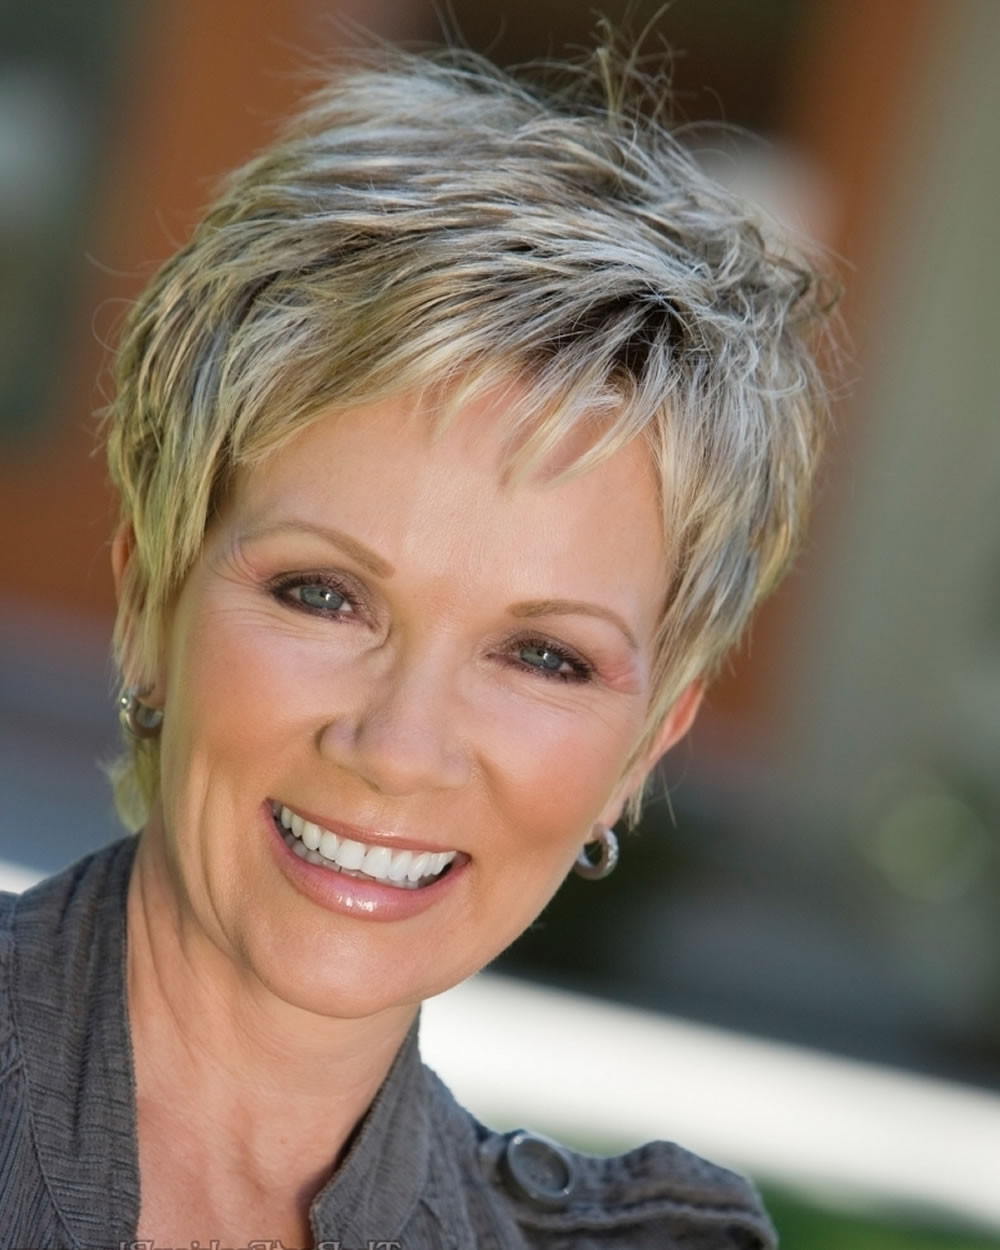 Best ideas about Short Haircuts For Women Over 50 2019 . Save or Pin Older women's short hairstyles and hair colors for 2019 Now.